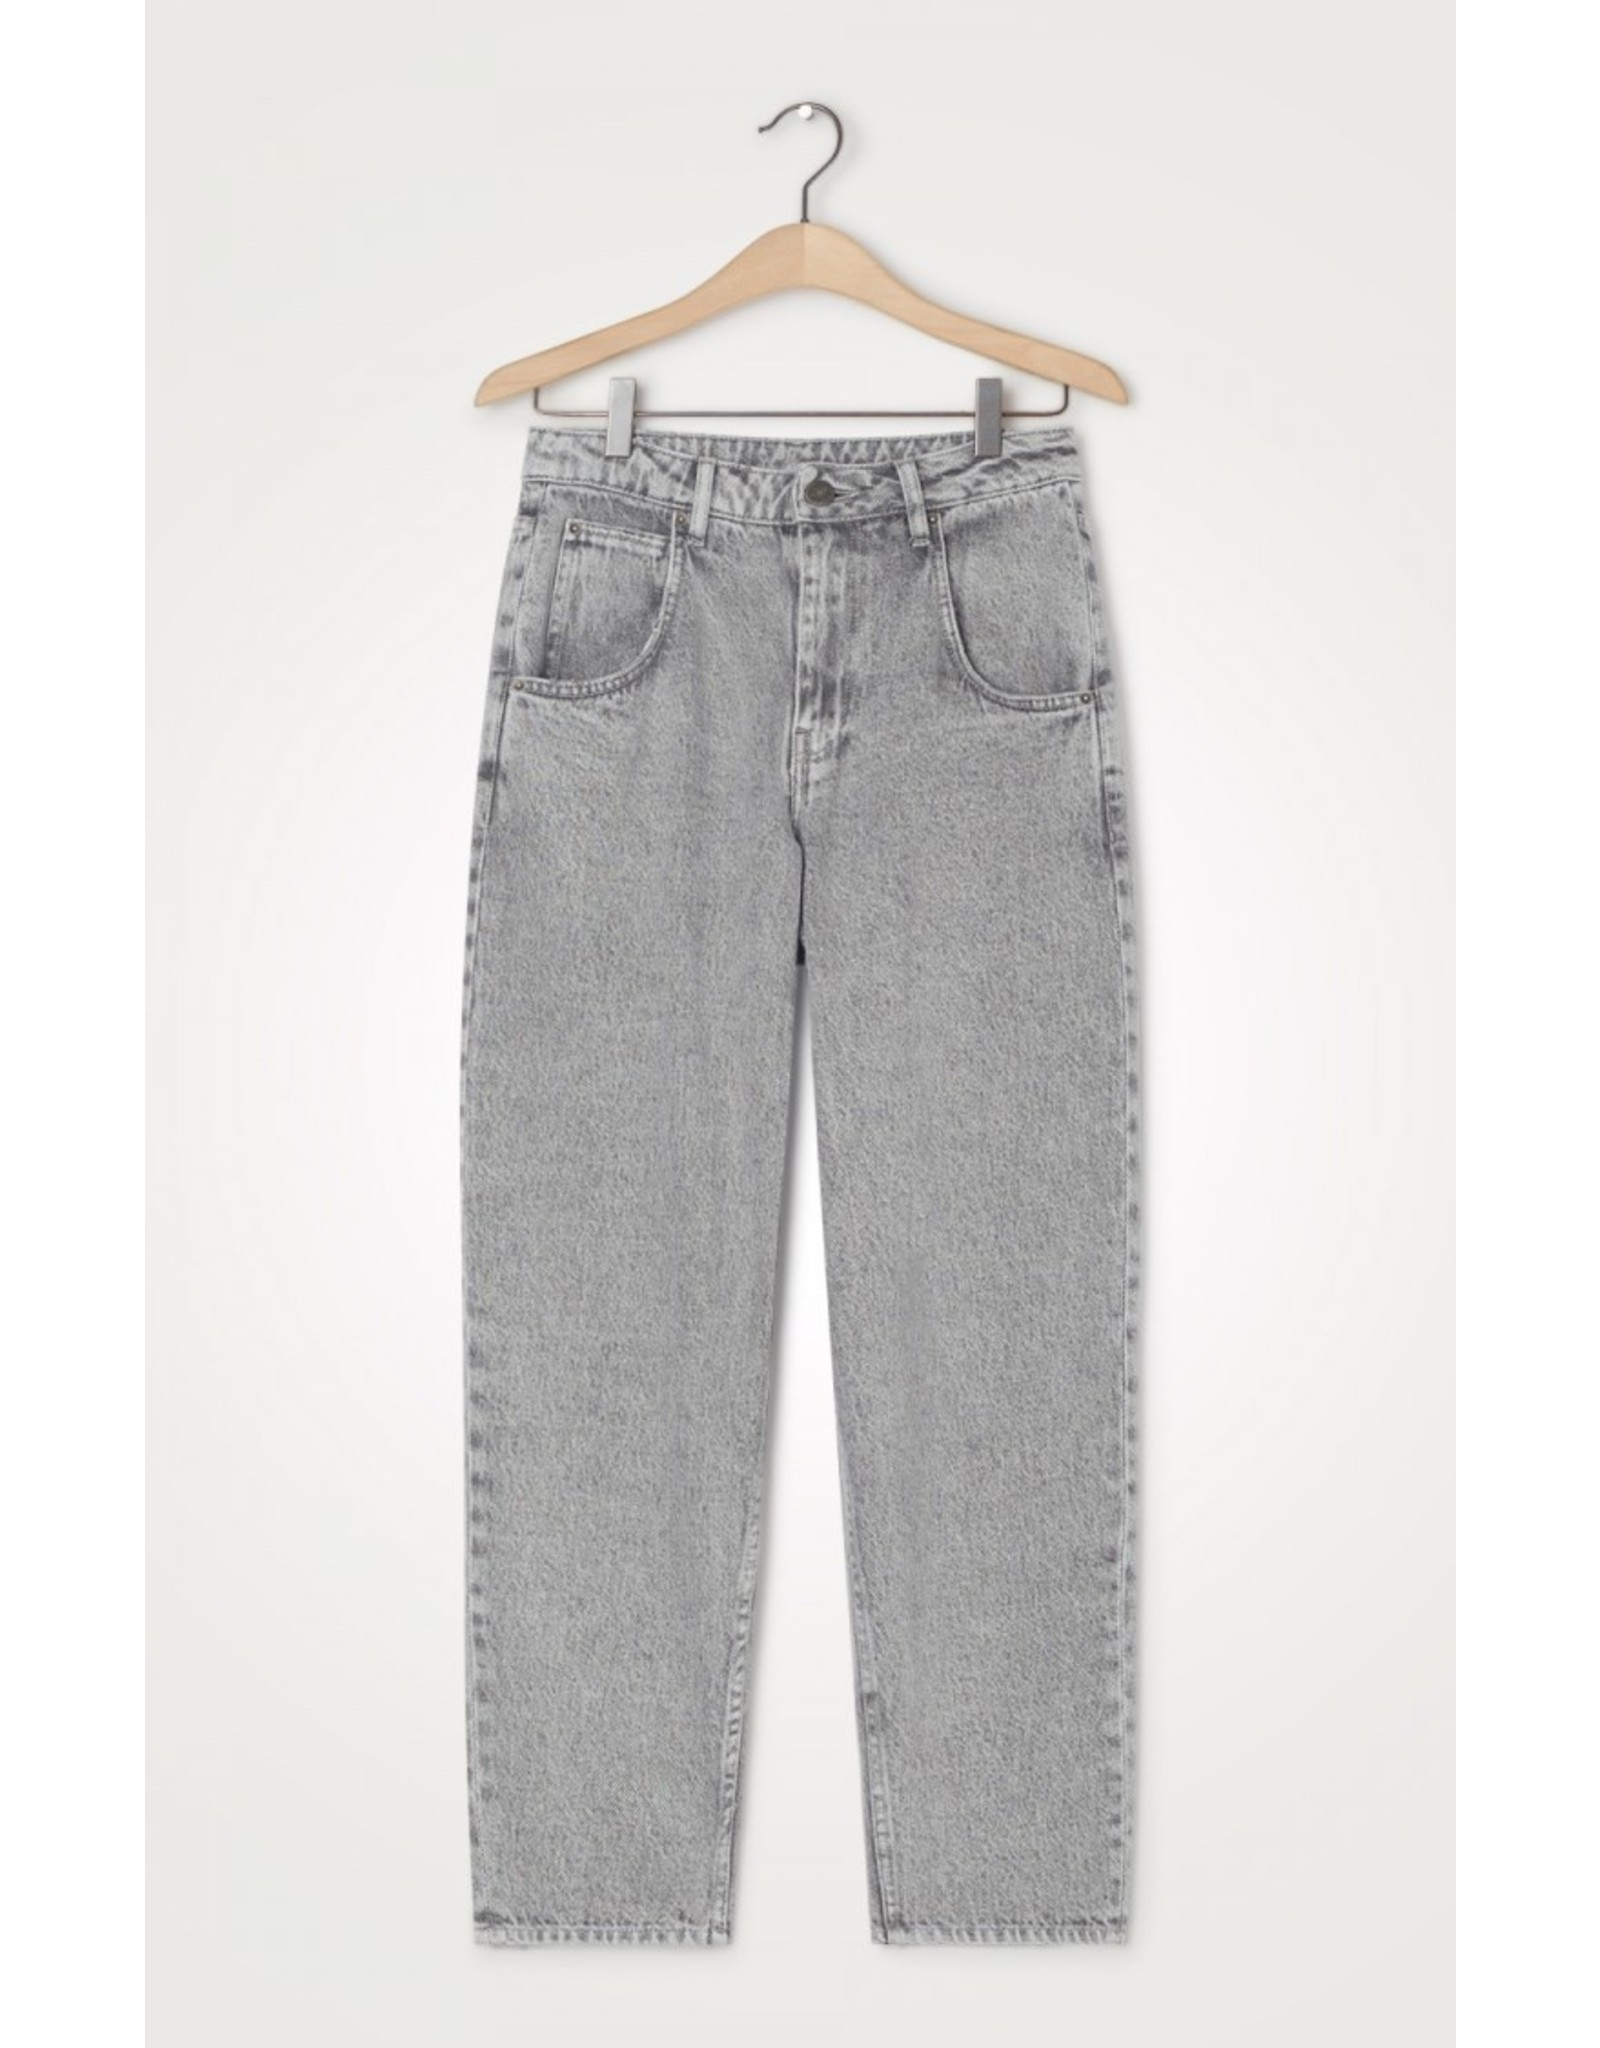 CARROT JEANS GREY